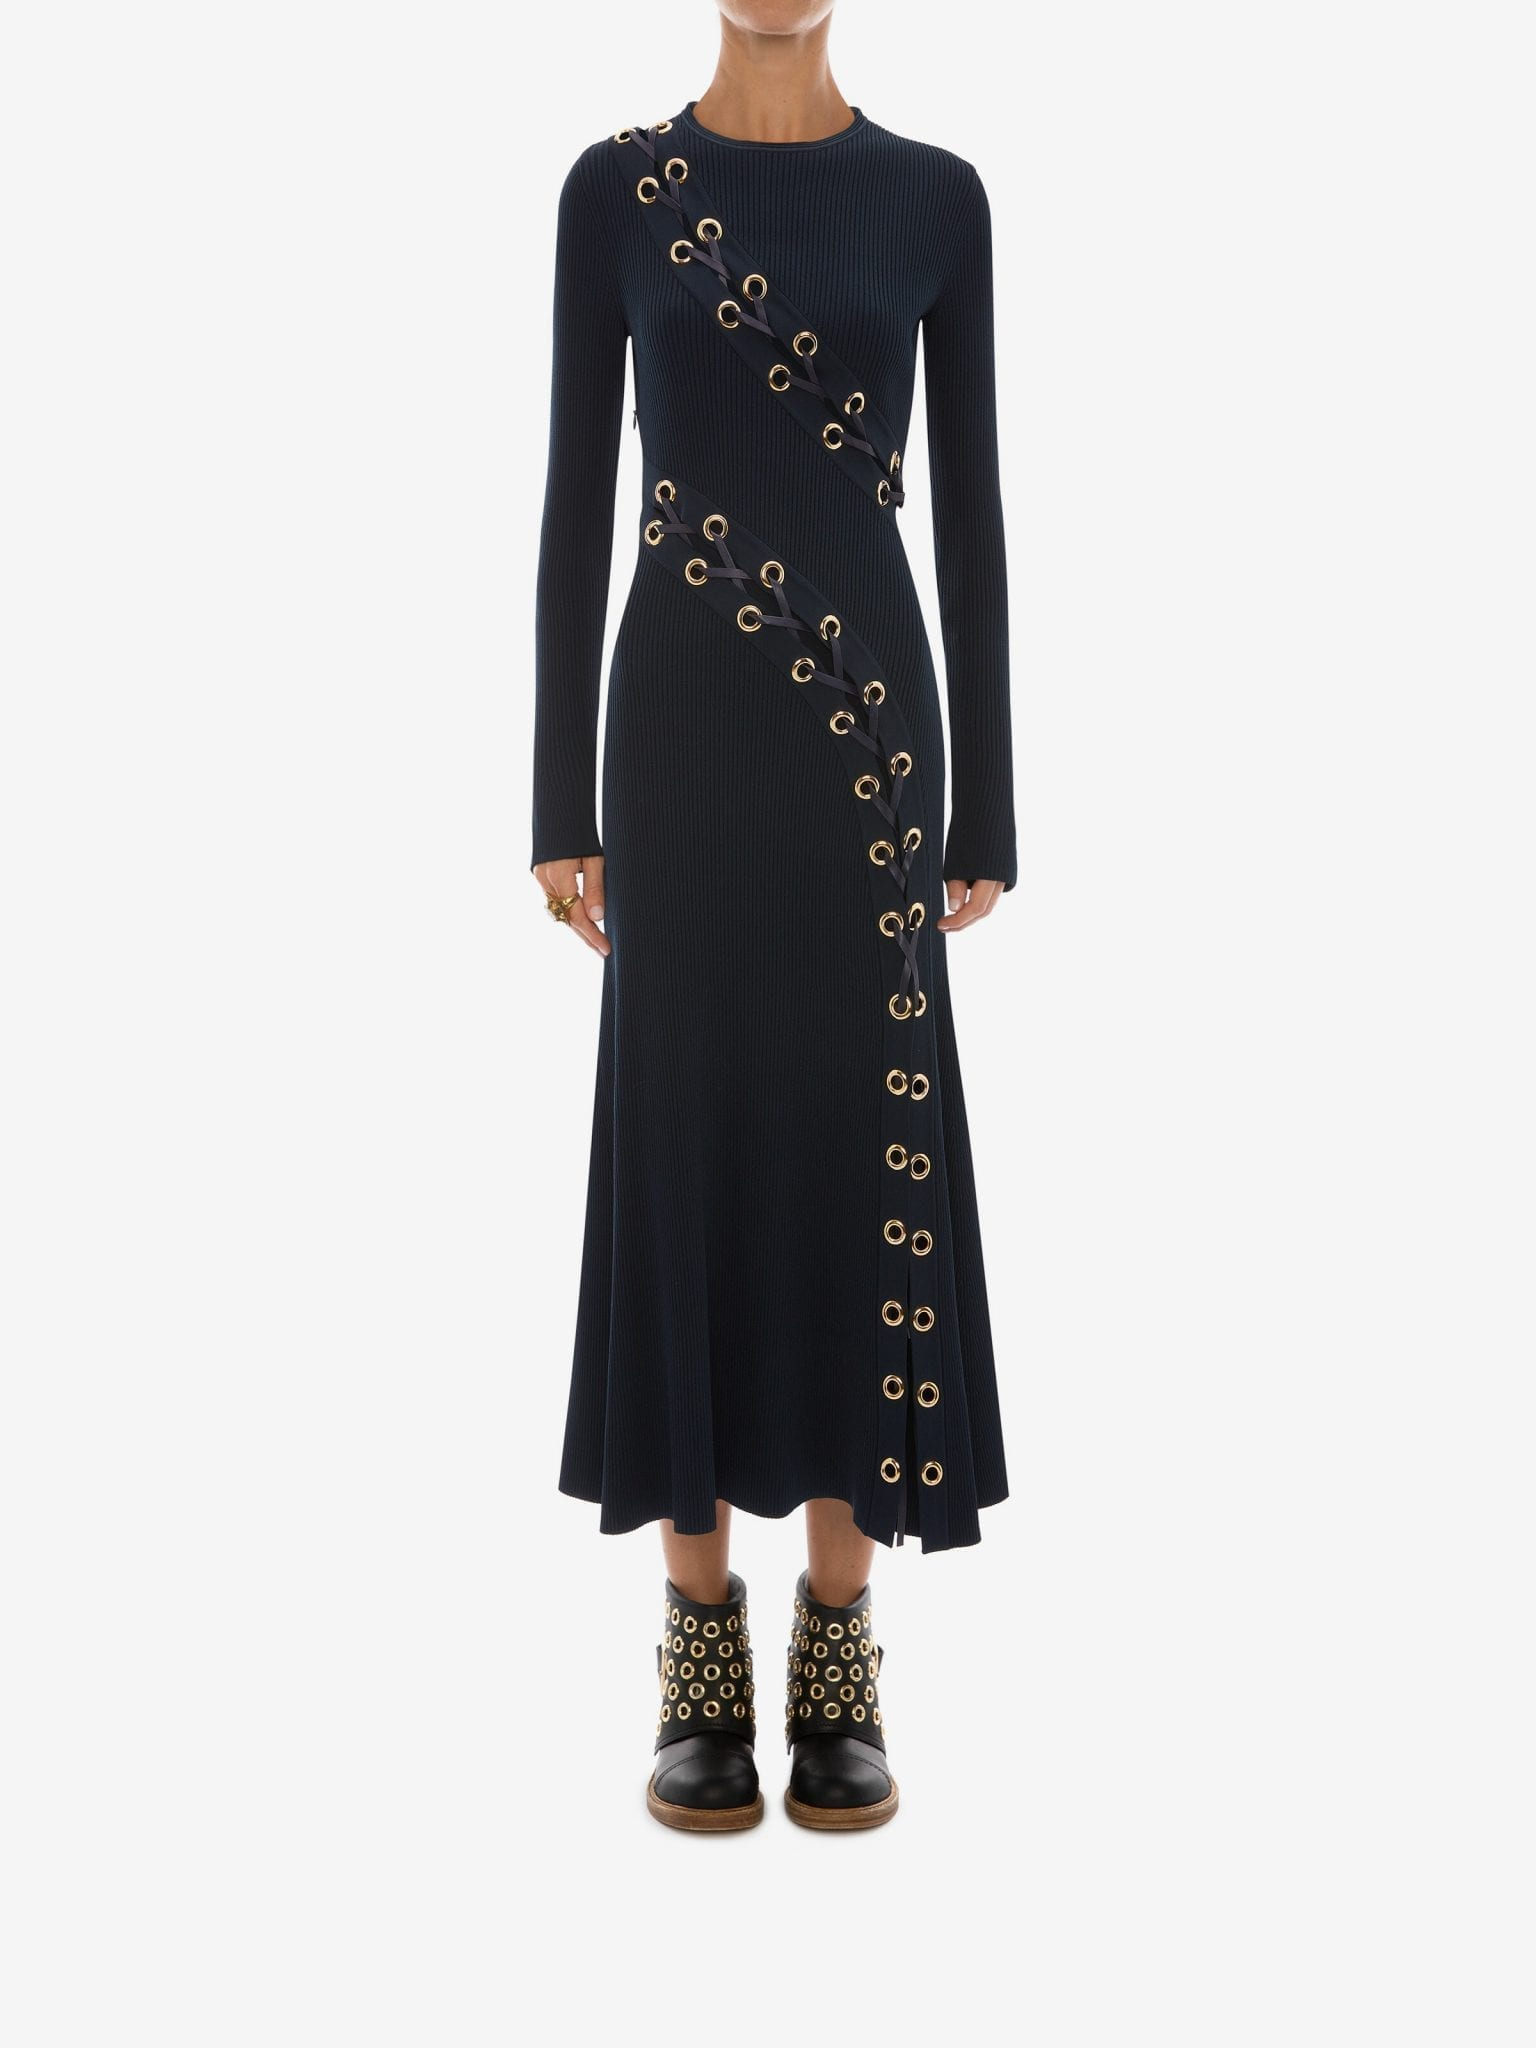 ALEXANDER MCQUEEN Eyelet Knitted Midi Dress